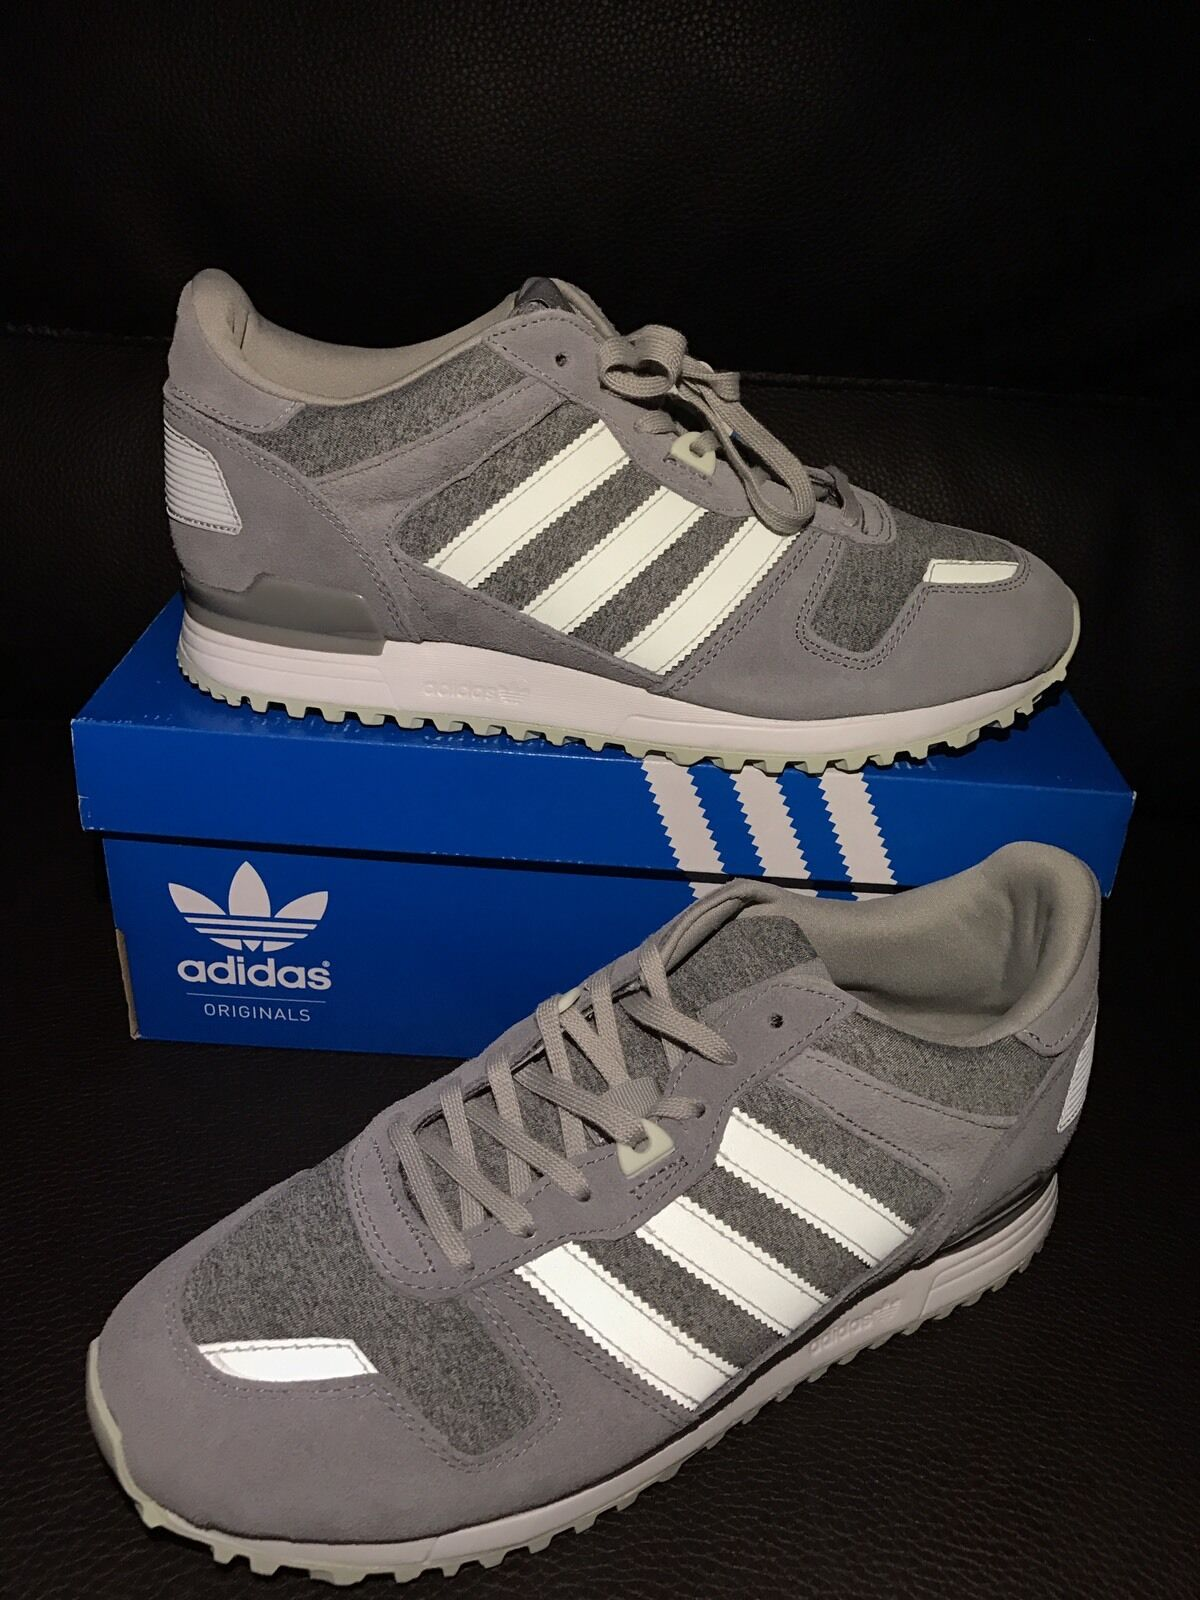 Adidas zx 700 W Gray Trainer Athletic zapatillas zapatillas 3 8,5 US 7 / 3 zapatillas 6f140b